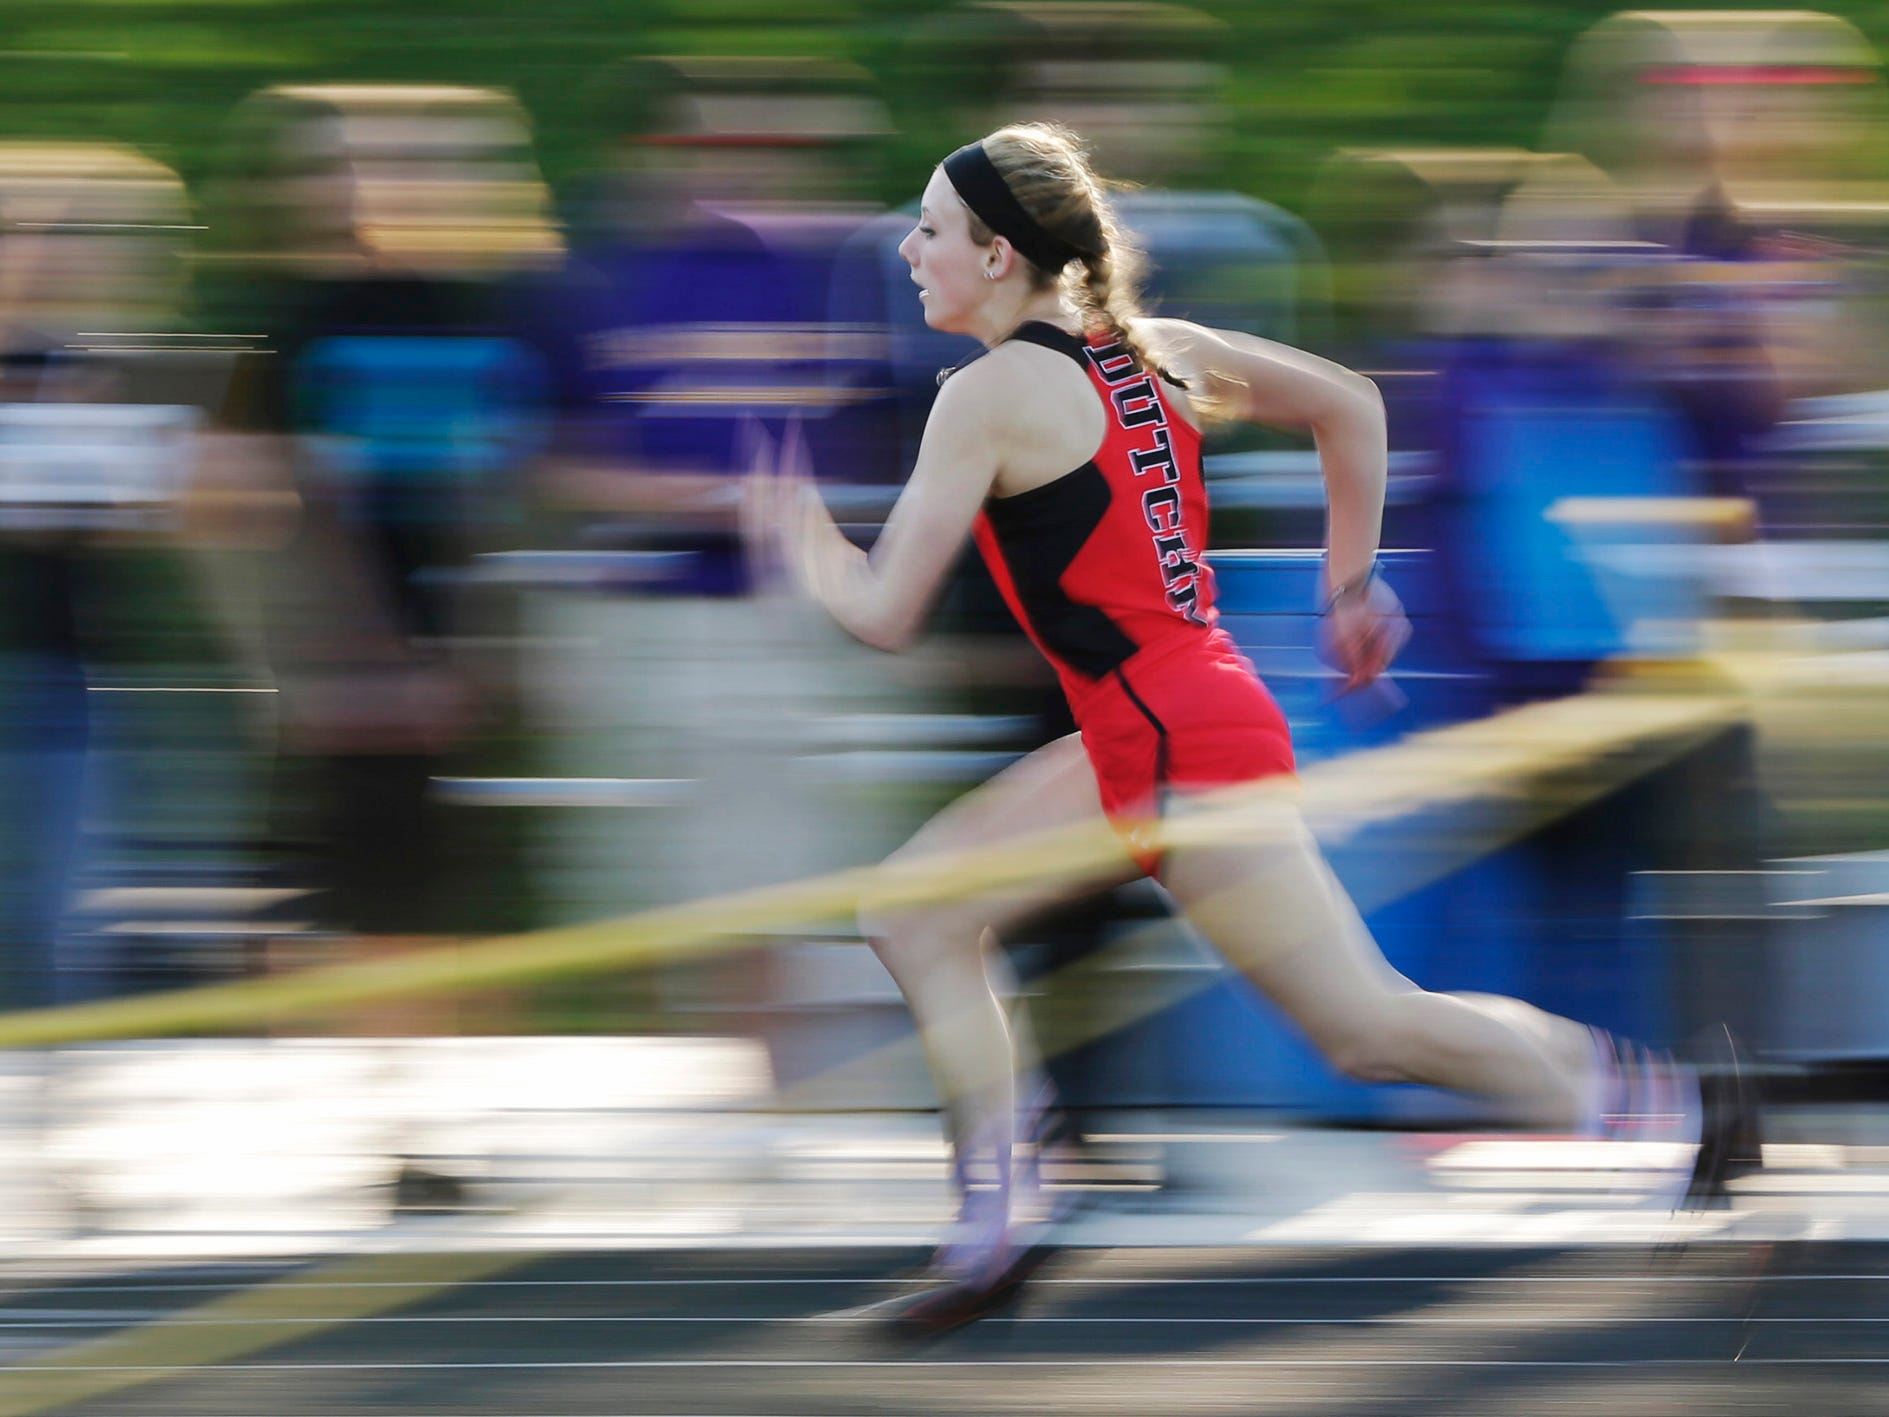 Oostburg's Kennedy Jepson wins in the 100 hurdles finals at the 48th annual Vanderpan Invitational meet, Friday, May 4, 2018, in Sheboygan Falls, Wis.